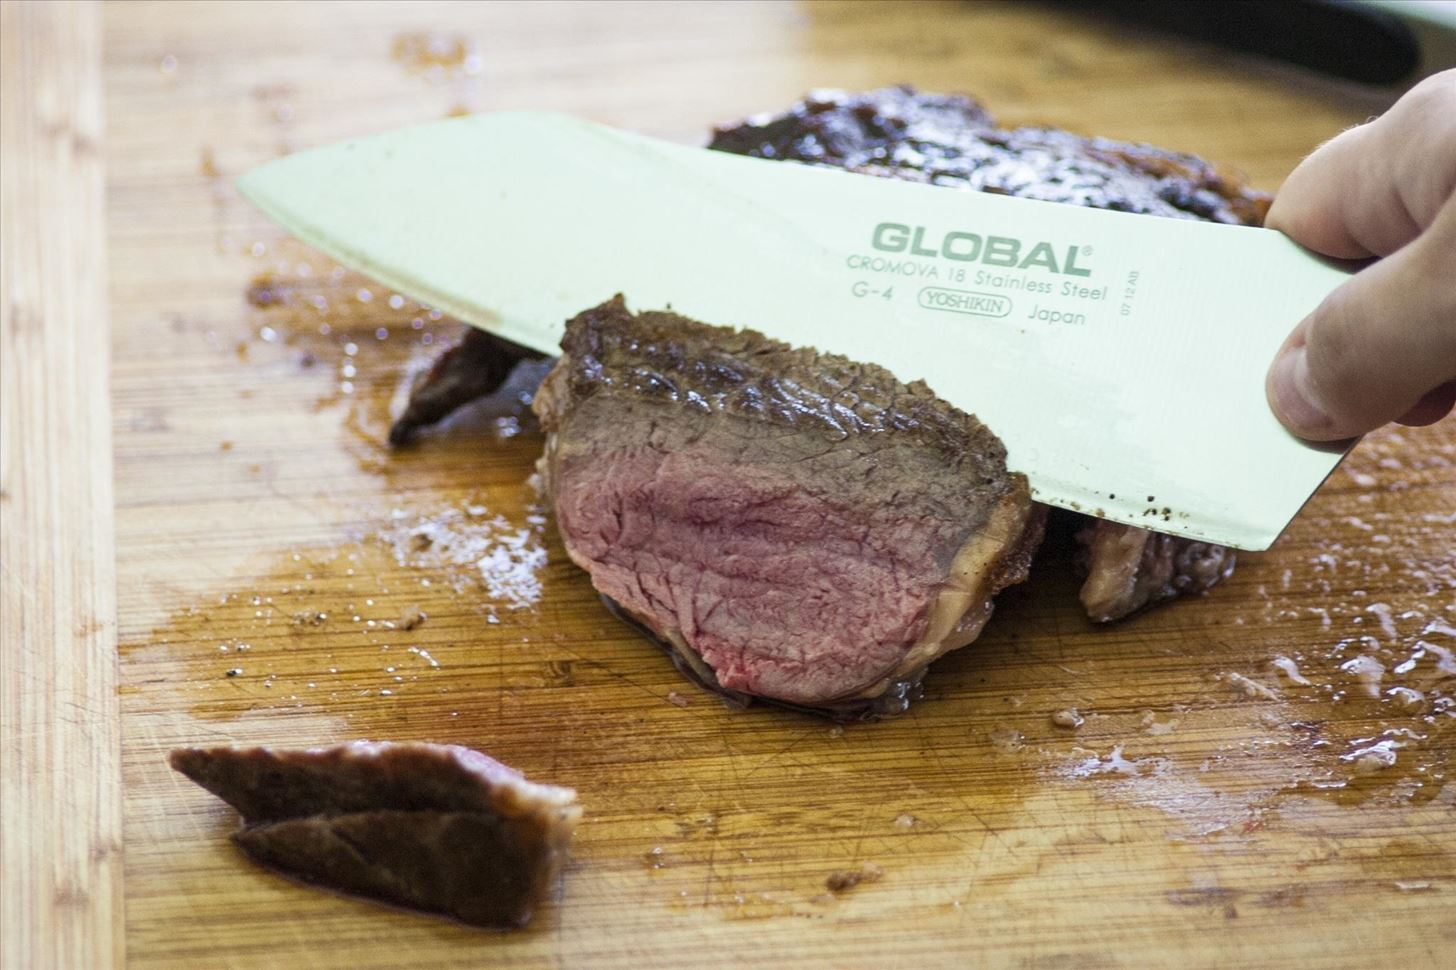 How to Cut a Cooked Steak the Right Way